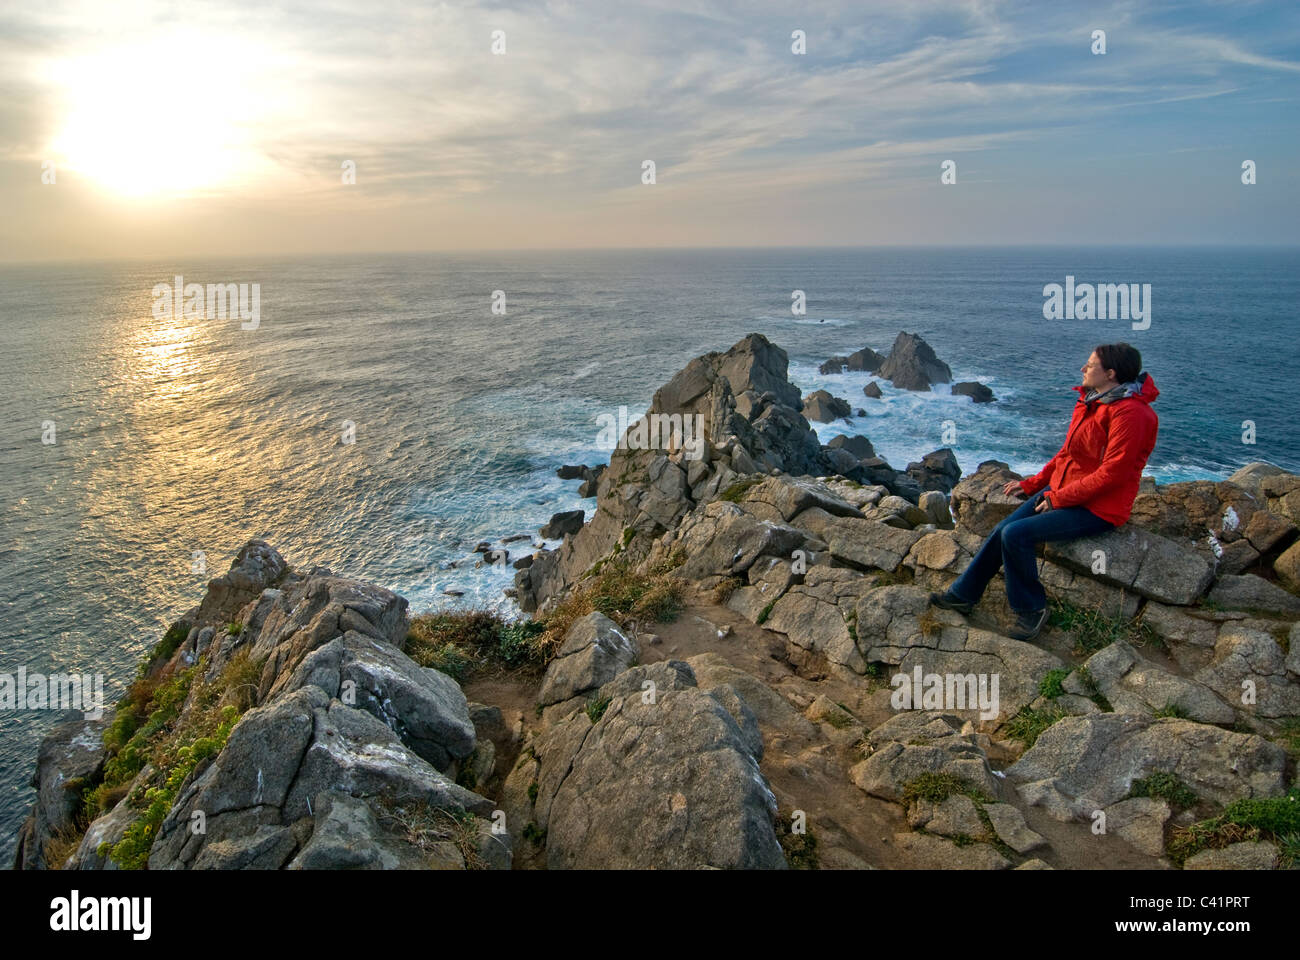 Punta de la Estaca de Bares headland, near Porto Bares, Galicia, Spain - Stock Image